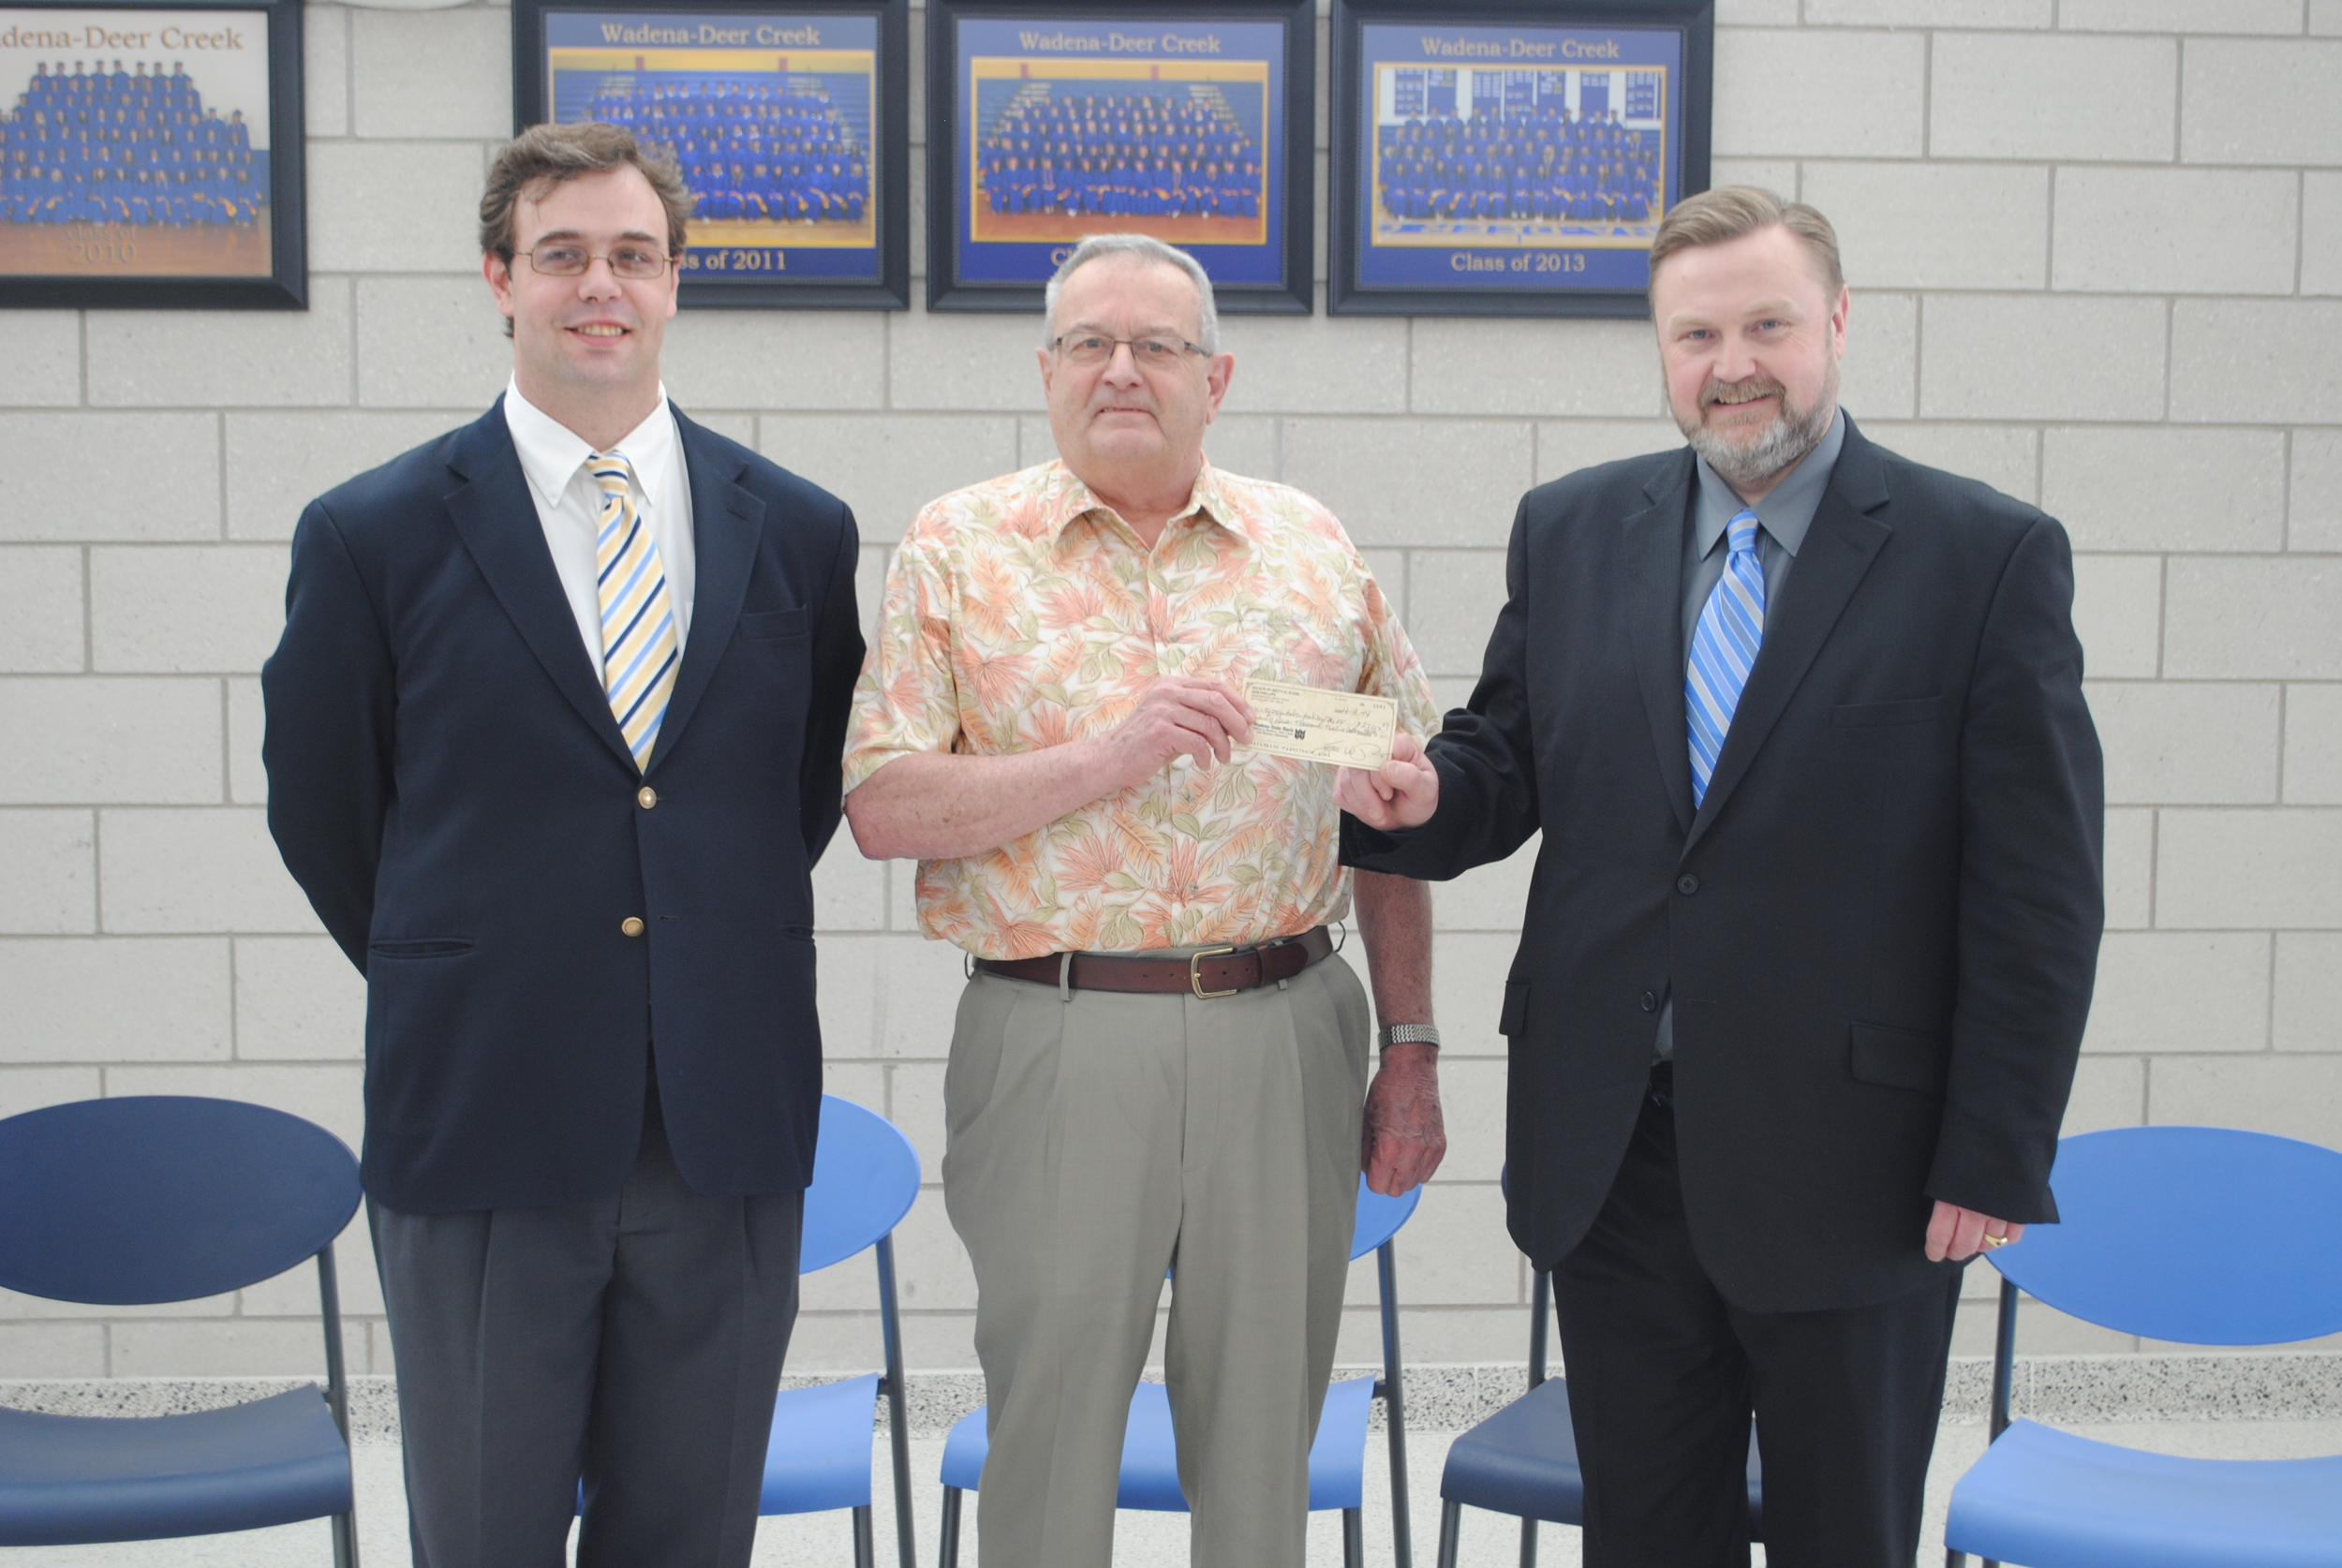 Sam Phillips hands WDC Superintendent Lee Westrum a gift from the estate of Betty Stark on April 9 at WDC Middle/High School. Also pictured is Malcolm Whynott, the attorney who assisted with the distribution of gifts. (Photo by Dana Pavek, WDC Schools)